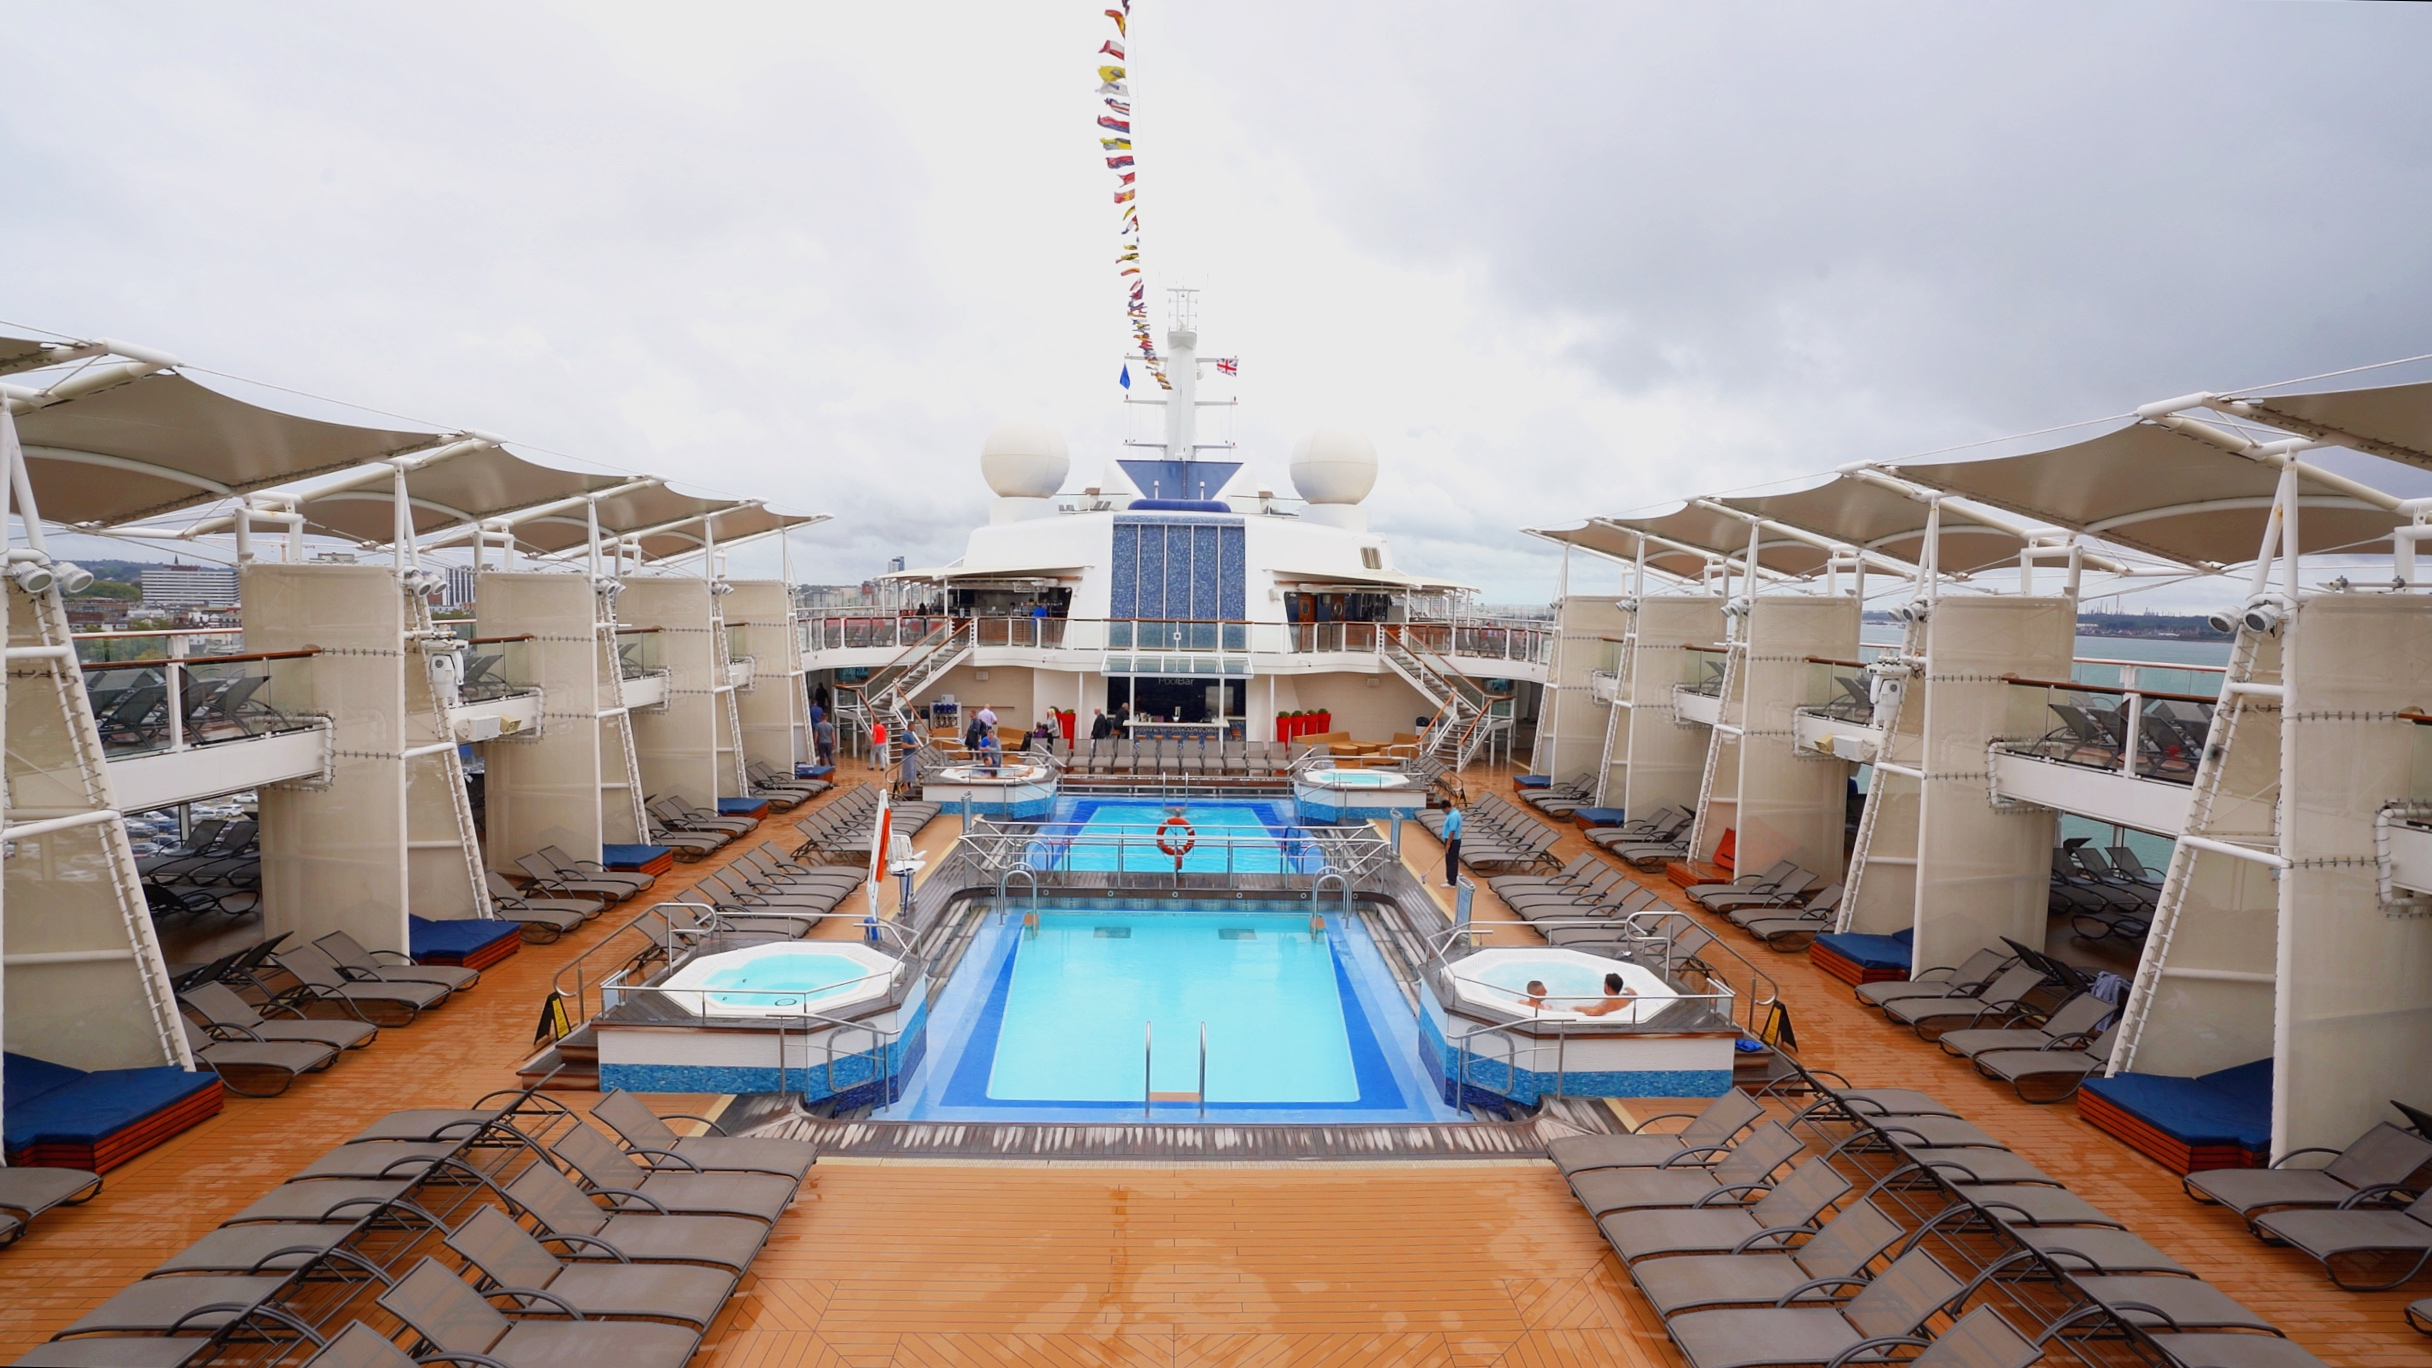 The outdoor pool area